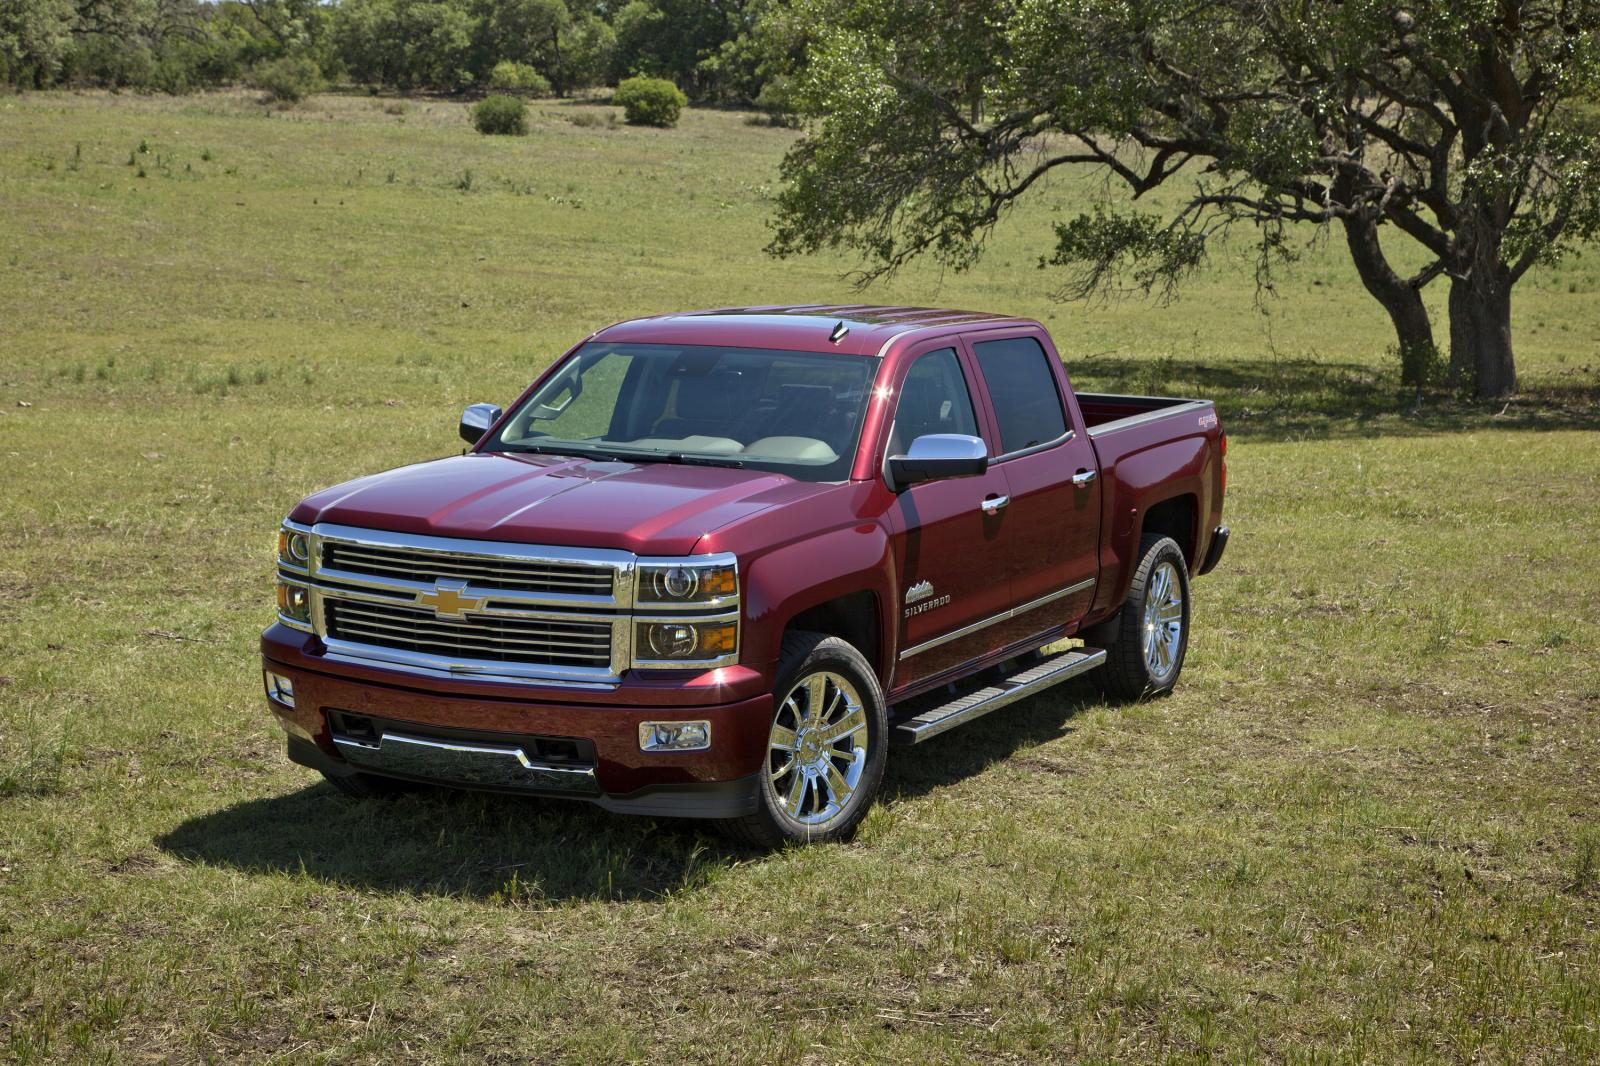 2014 chevrolet silverado high country unveiled autoevolution. Black Bedroom Furniture Sets. Home Design Ideas